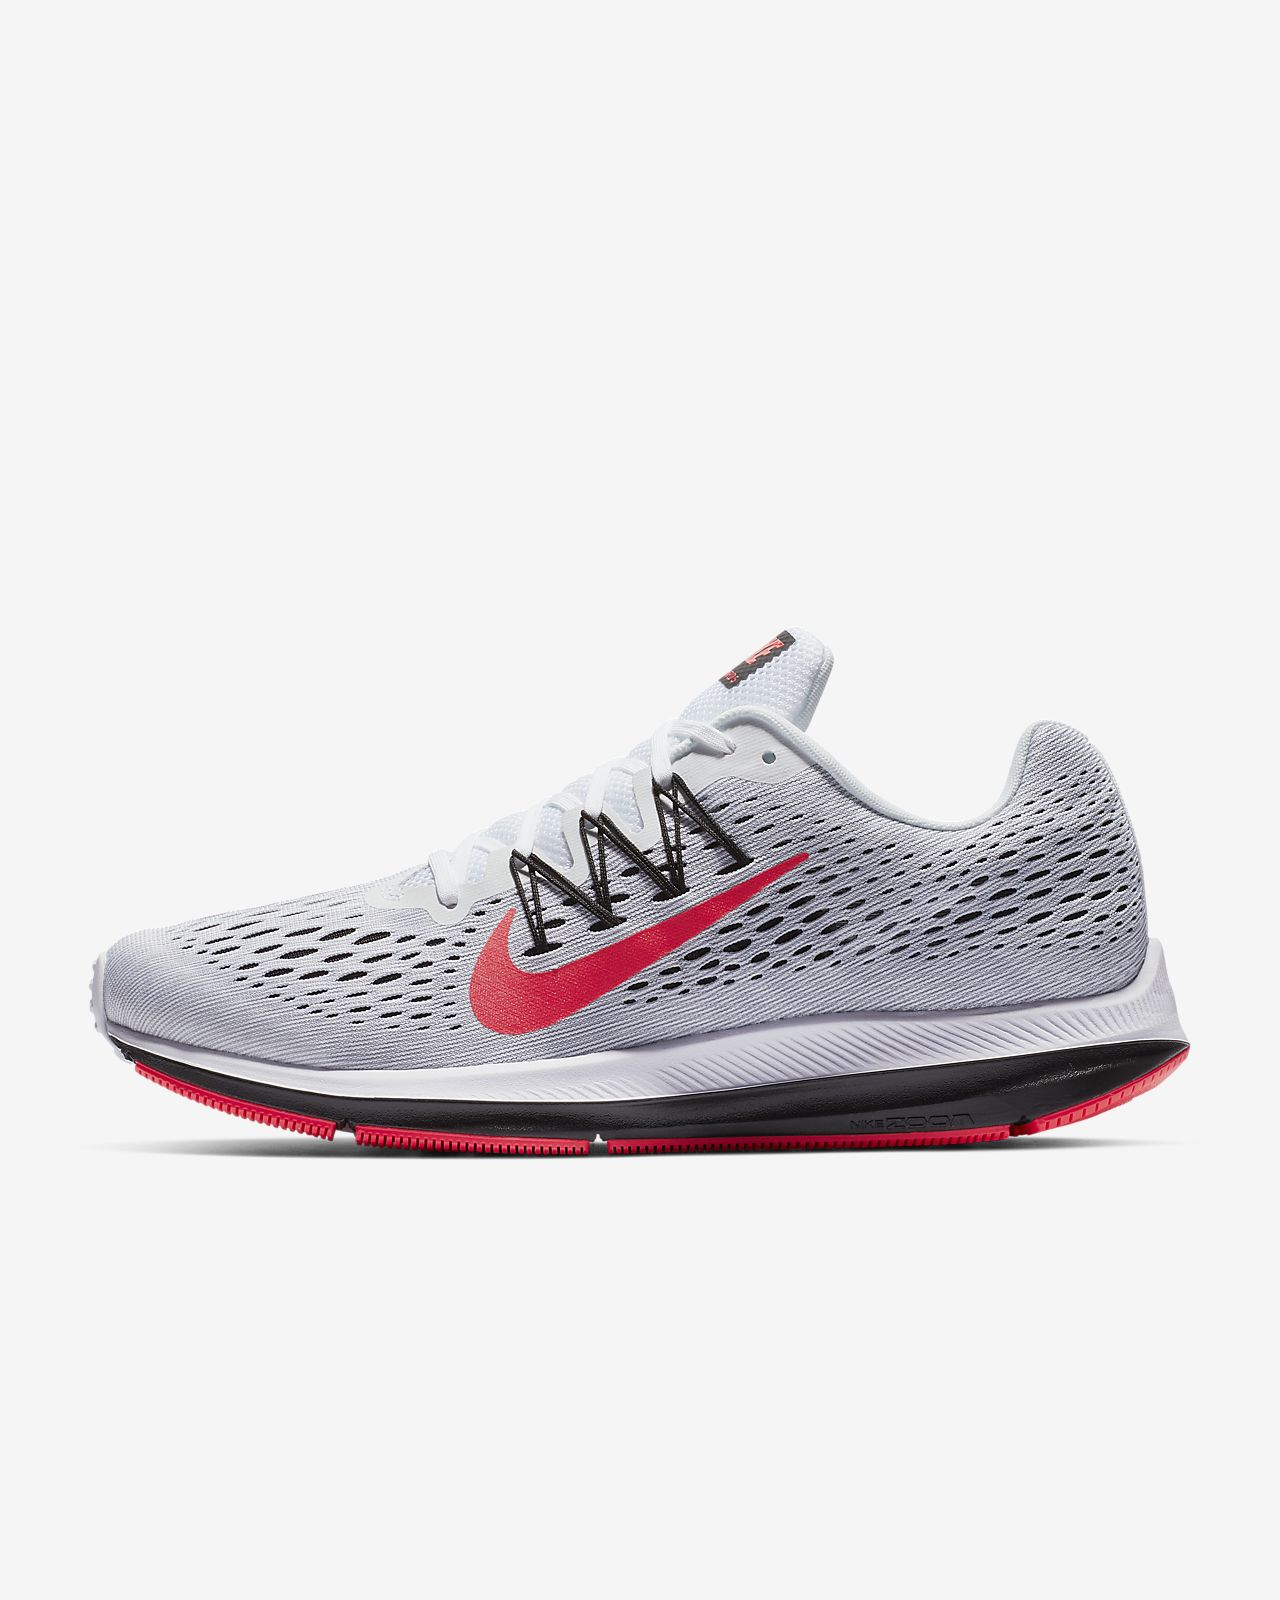 45b84eff77e0 Nike Air Zoom Winflo 5 Men s Running Shoe. Nike.com